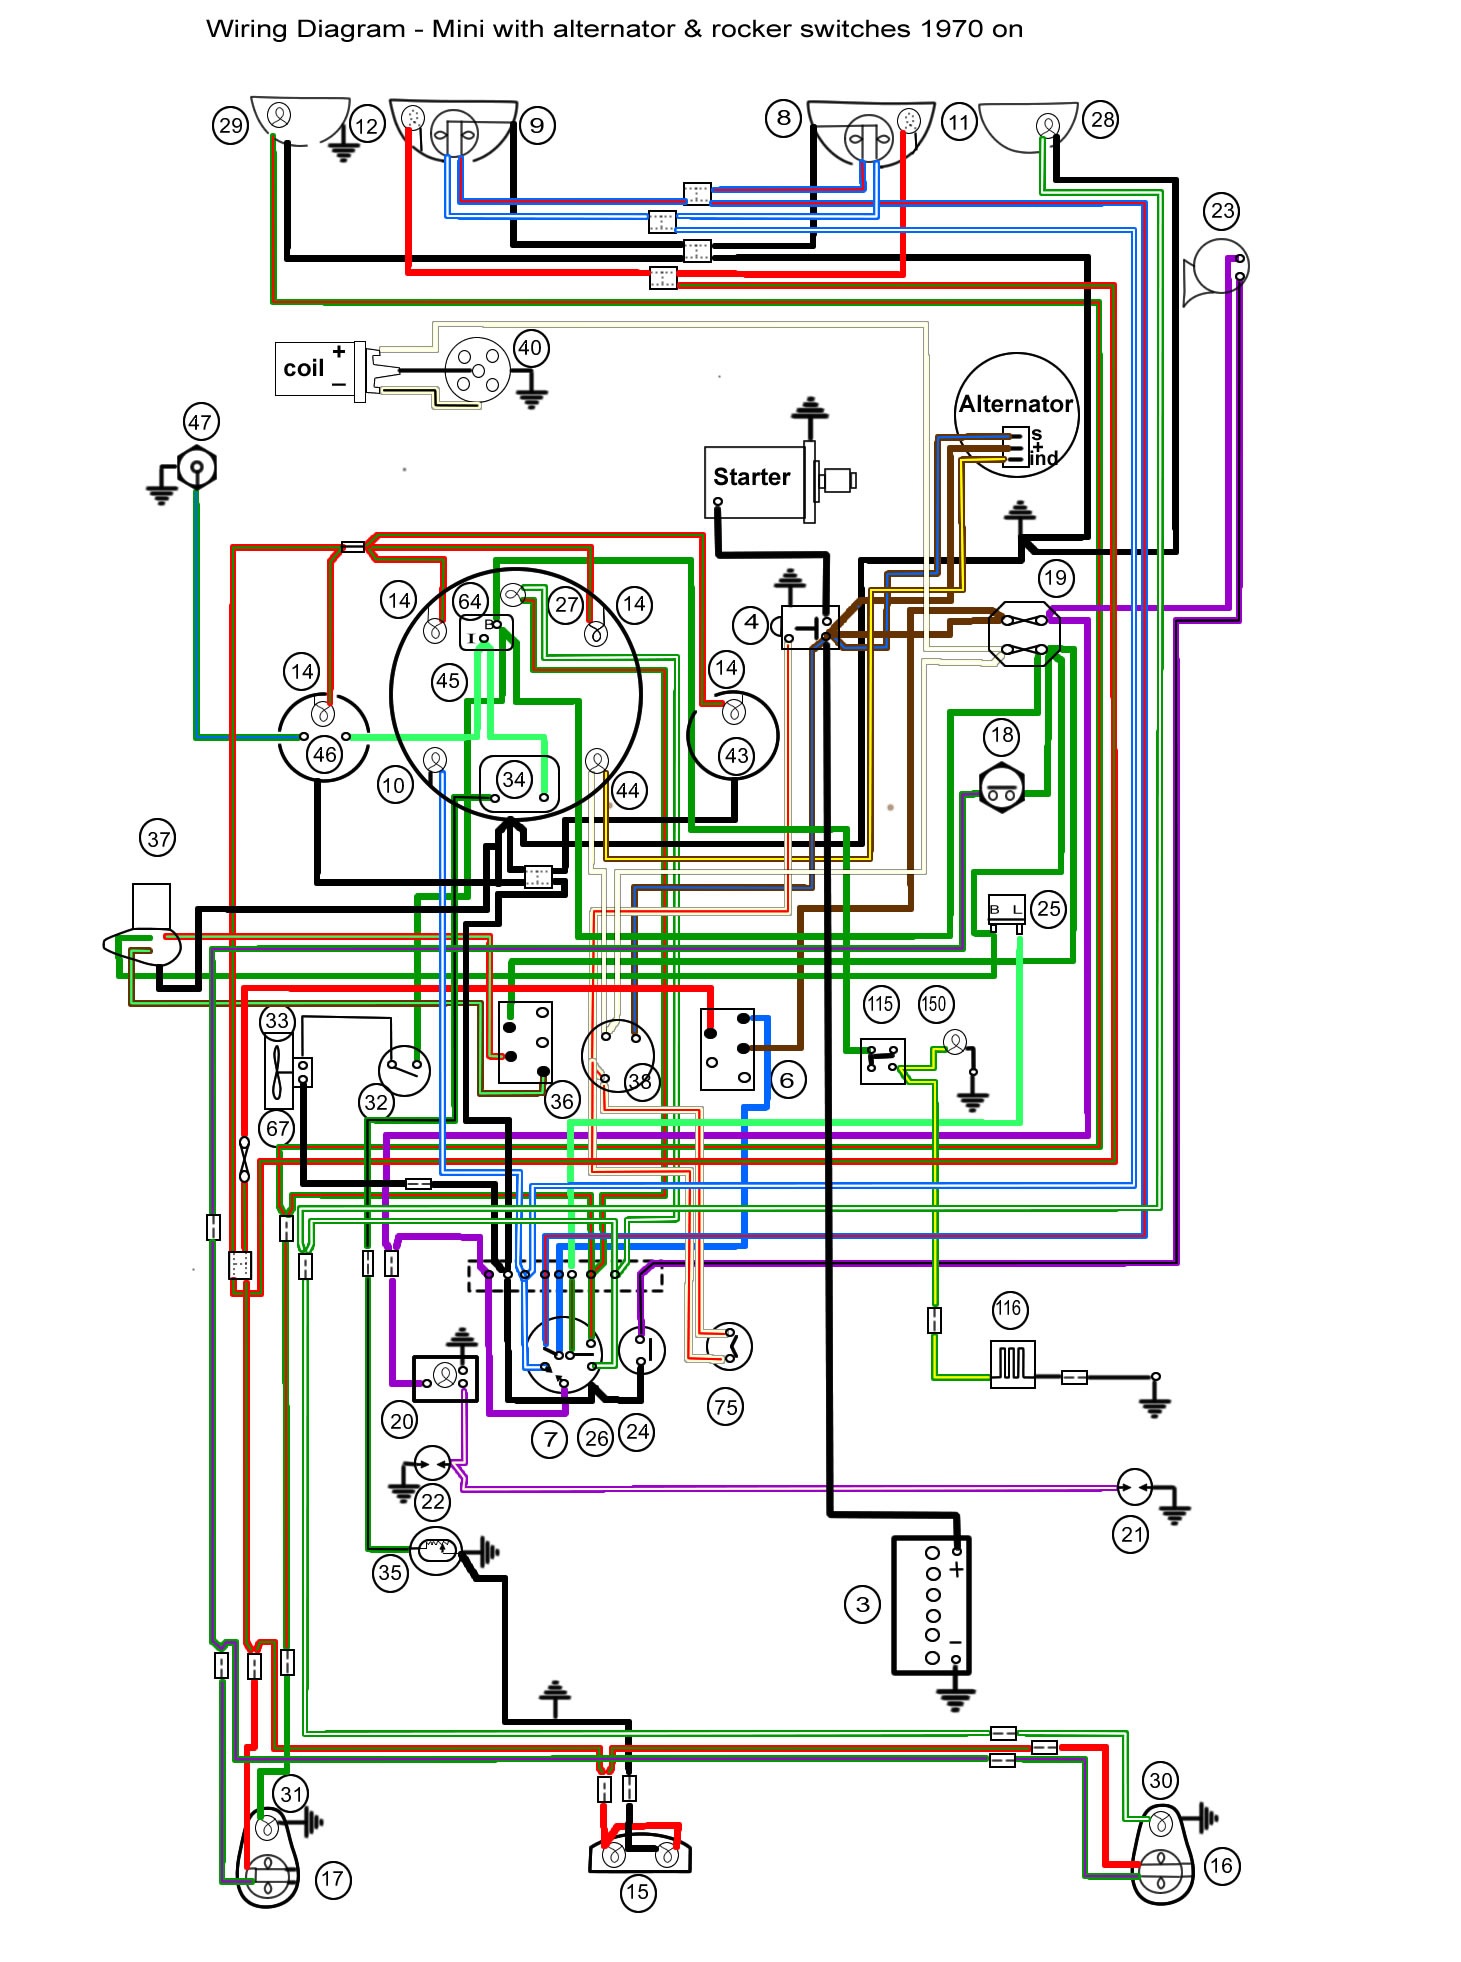 minifinity the classic mini forum and resource | • view ... 2004 mini cooper s wiring diagram